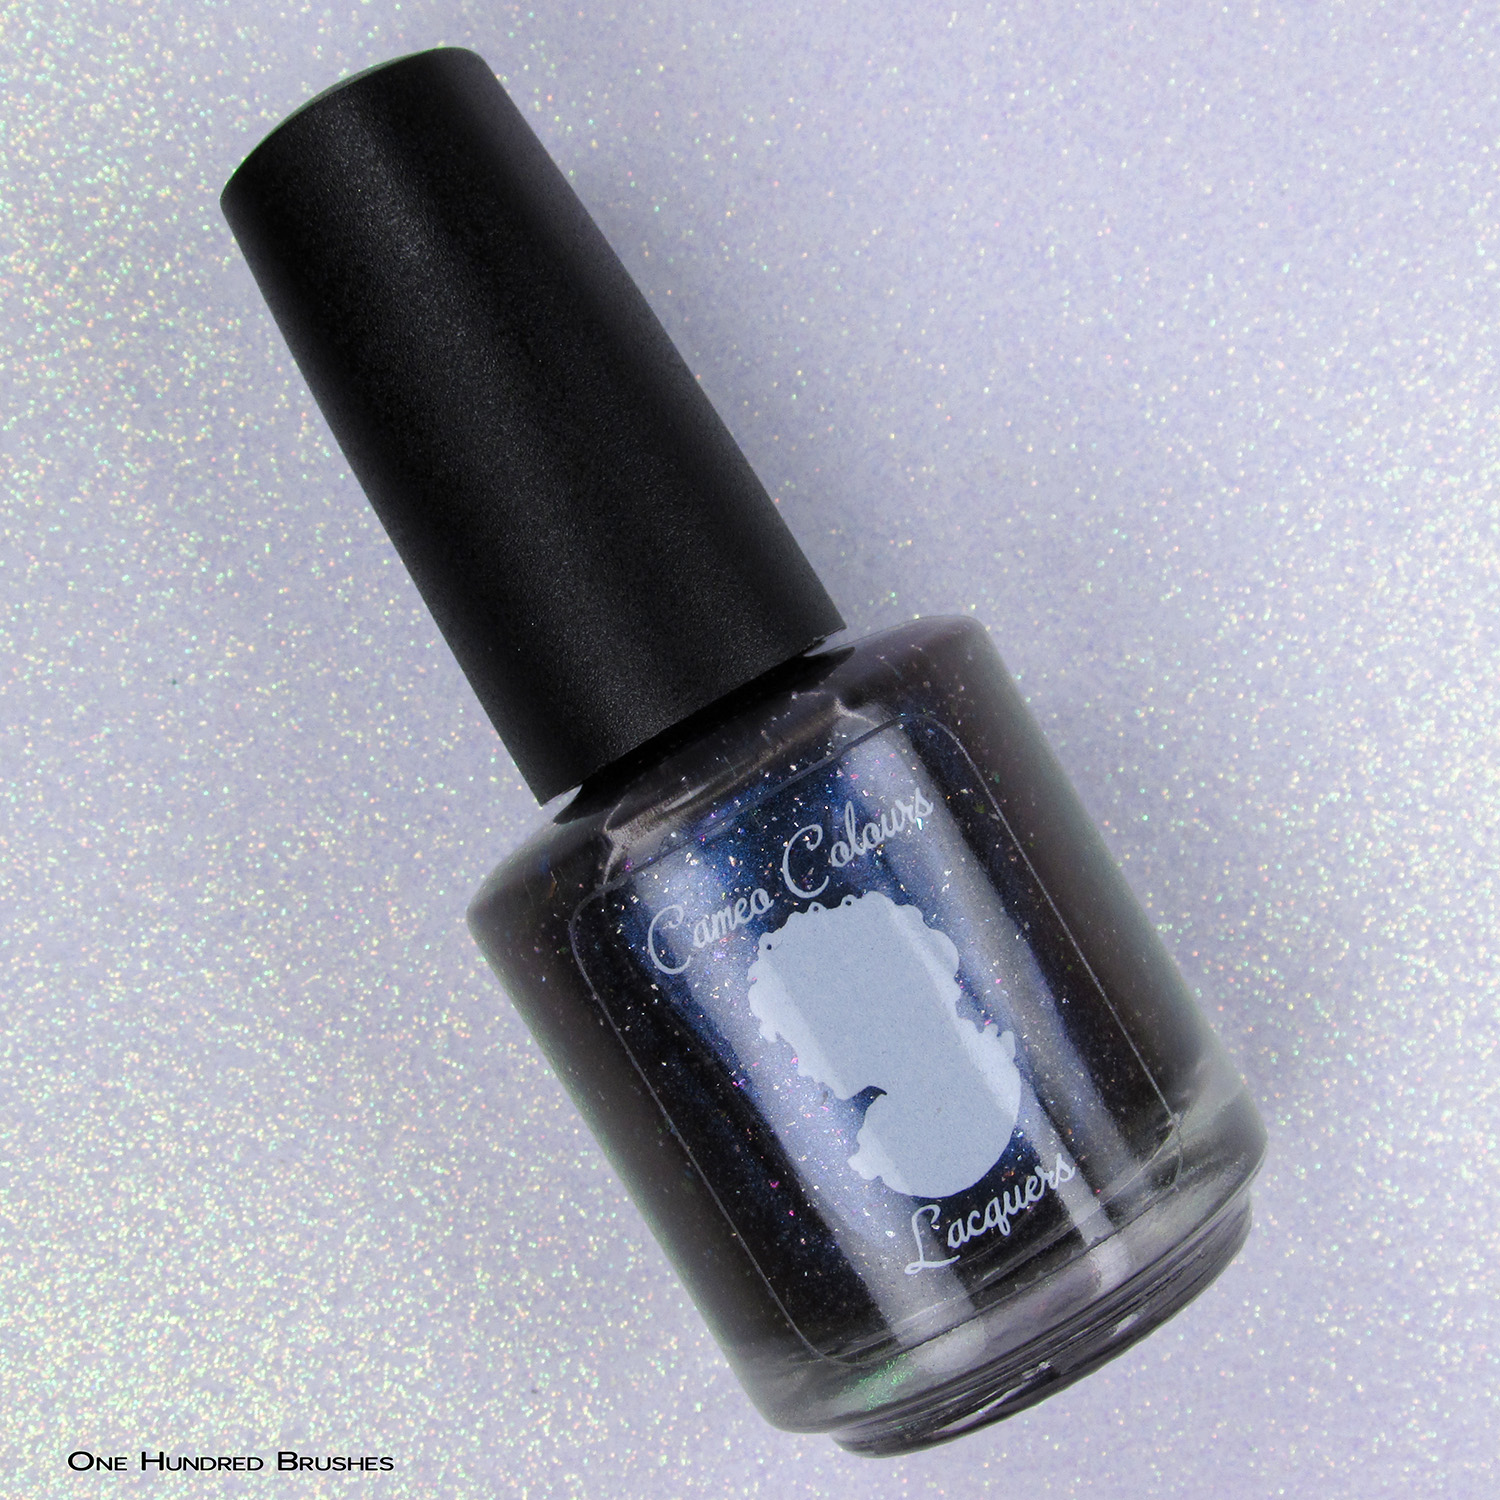 2,191 Days of Awesome - Cameo Colours Lacquers